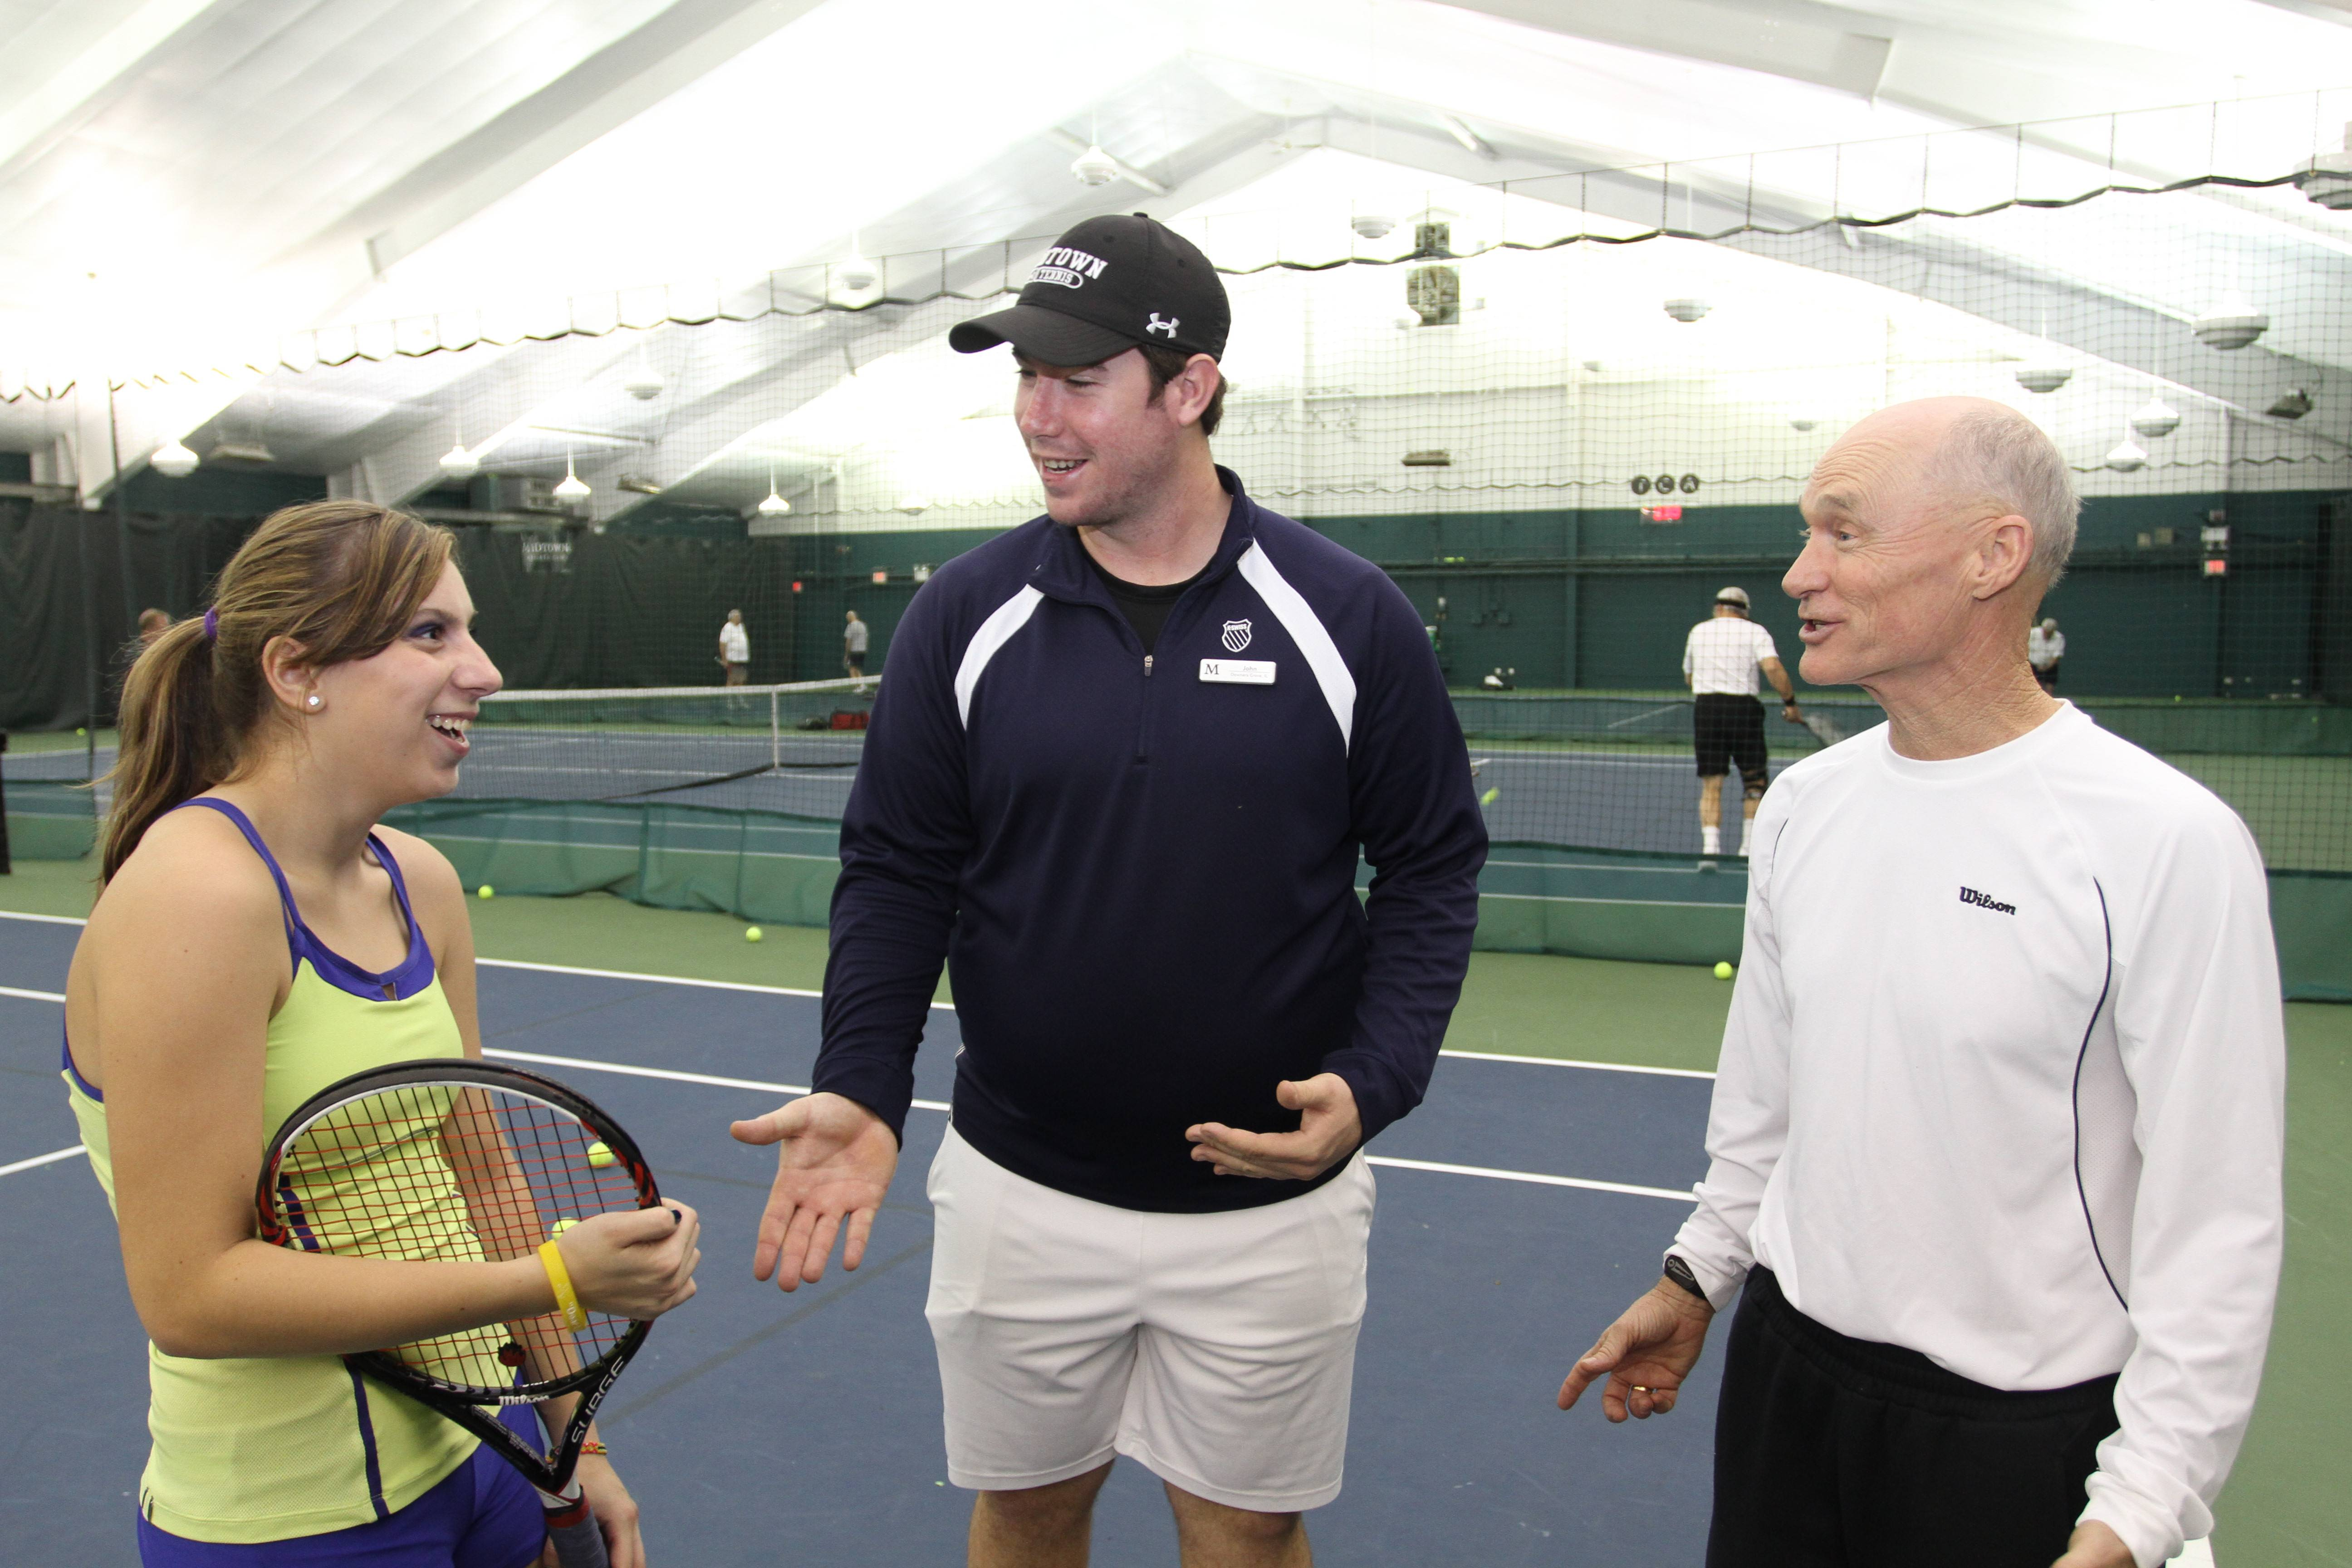 Midtown Athletic Club Willowbrook Tennis Director Randy Paisley (right) shares a laugh with tennis coach John Irish and Midtown member Emily Binder of Downers Grove.